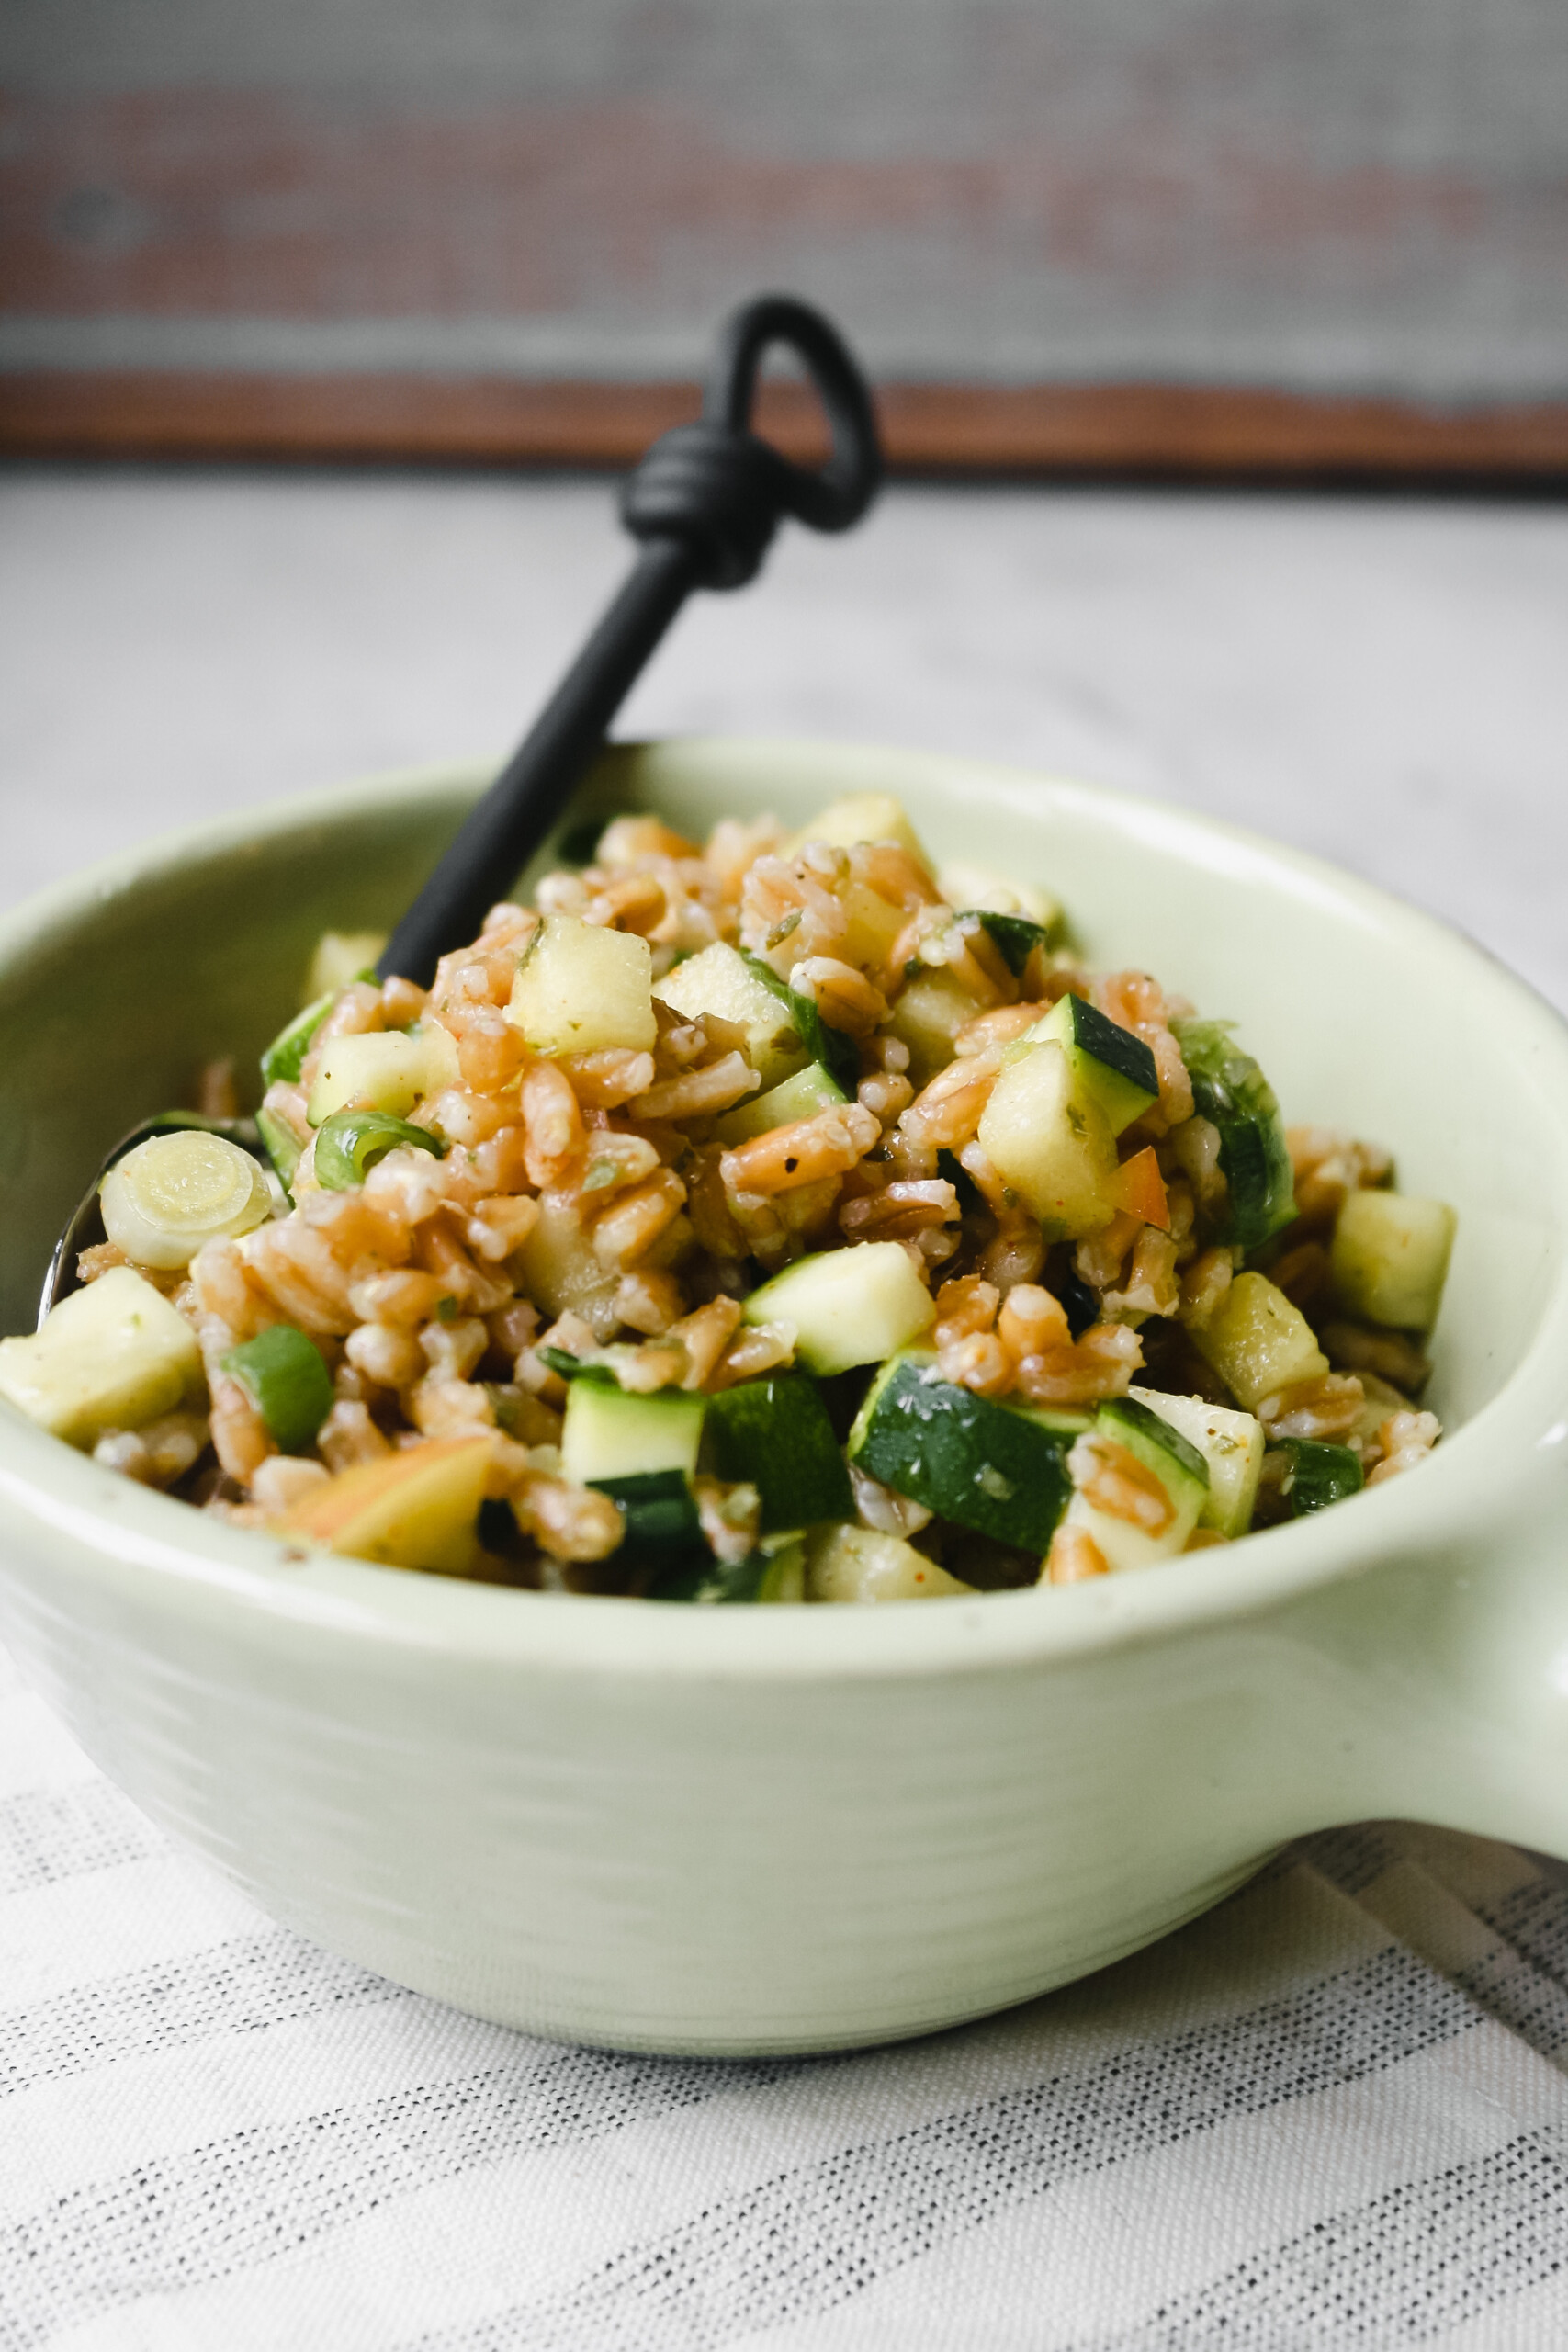 Overhead photograph of farro salad in a greed bowl on a white marble table